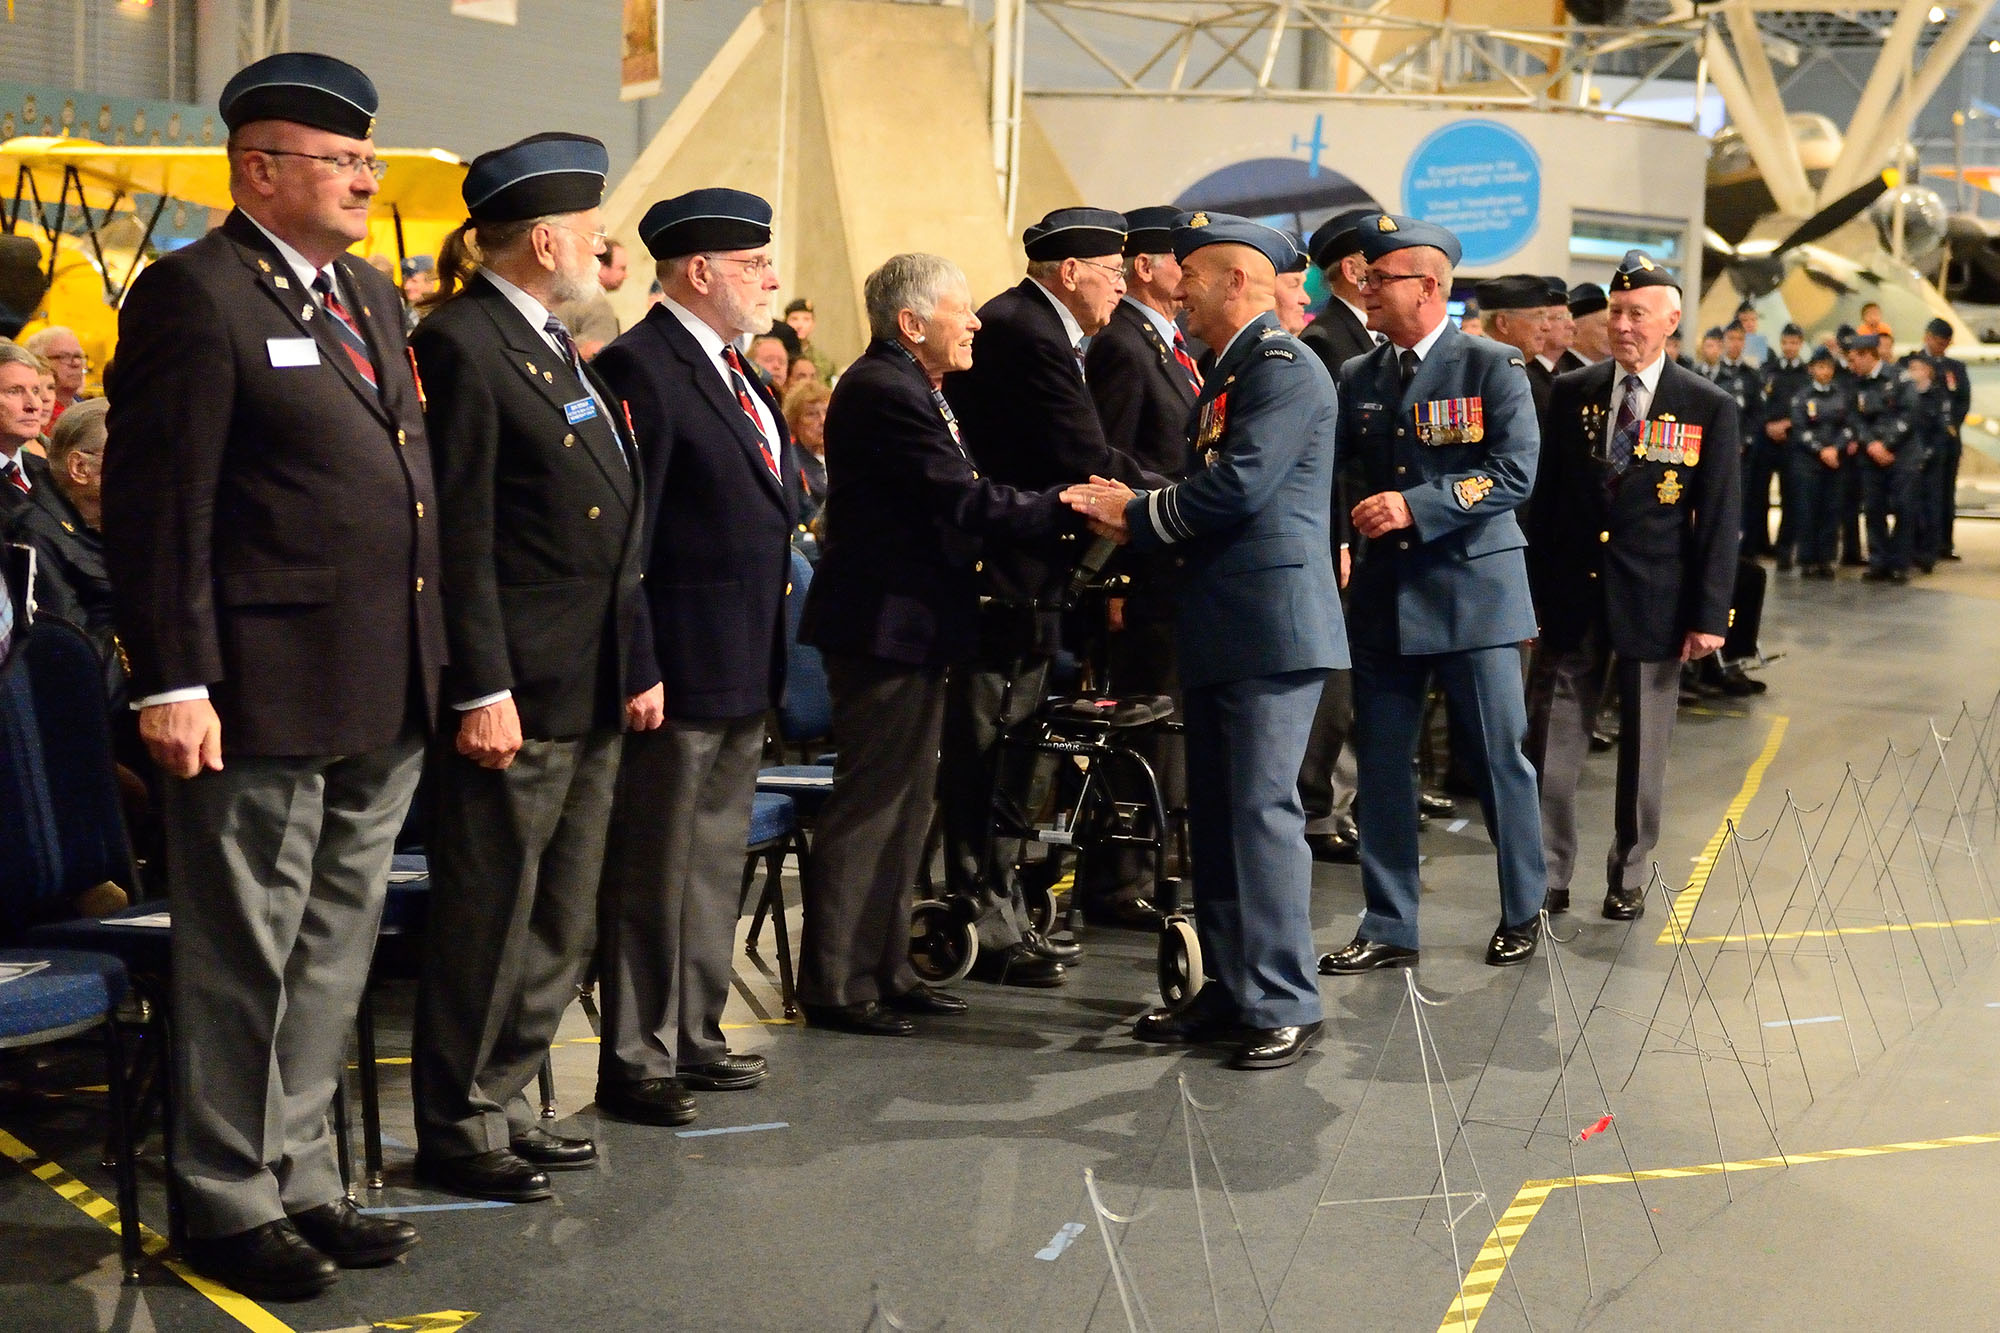 Lieutenant-General Yvan Blondin, Commander Royal Canadian Air Force, greets veterans during the 2014 Battle of Britain Ceremony at the Canada Aviation and Space Museum in Ottawa, Ontario. PHOTO: Corporal Chase Miller